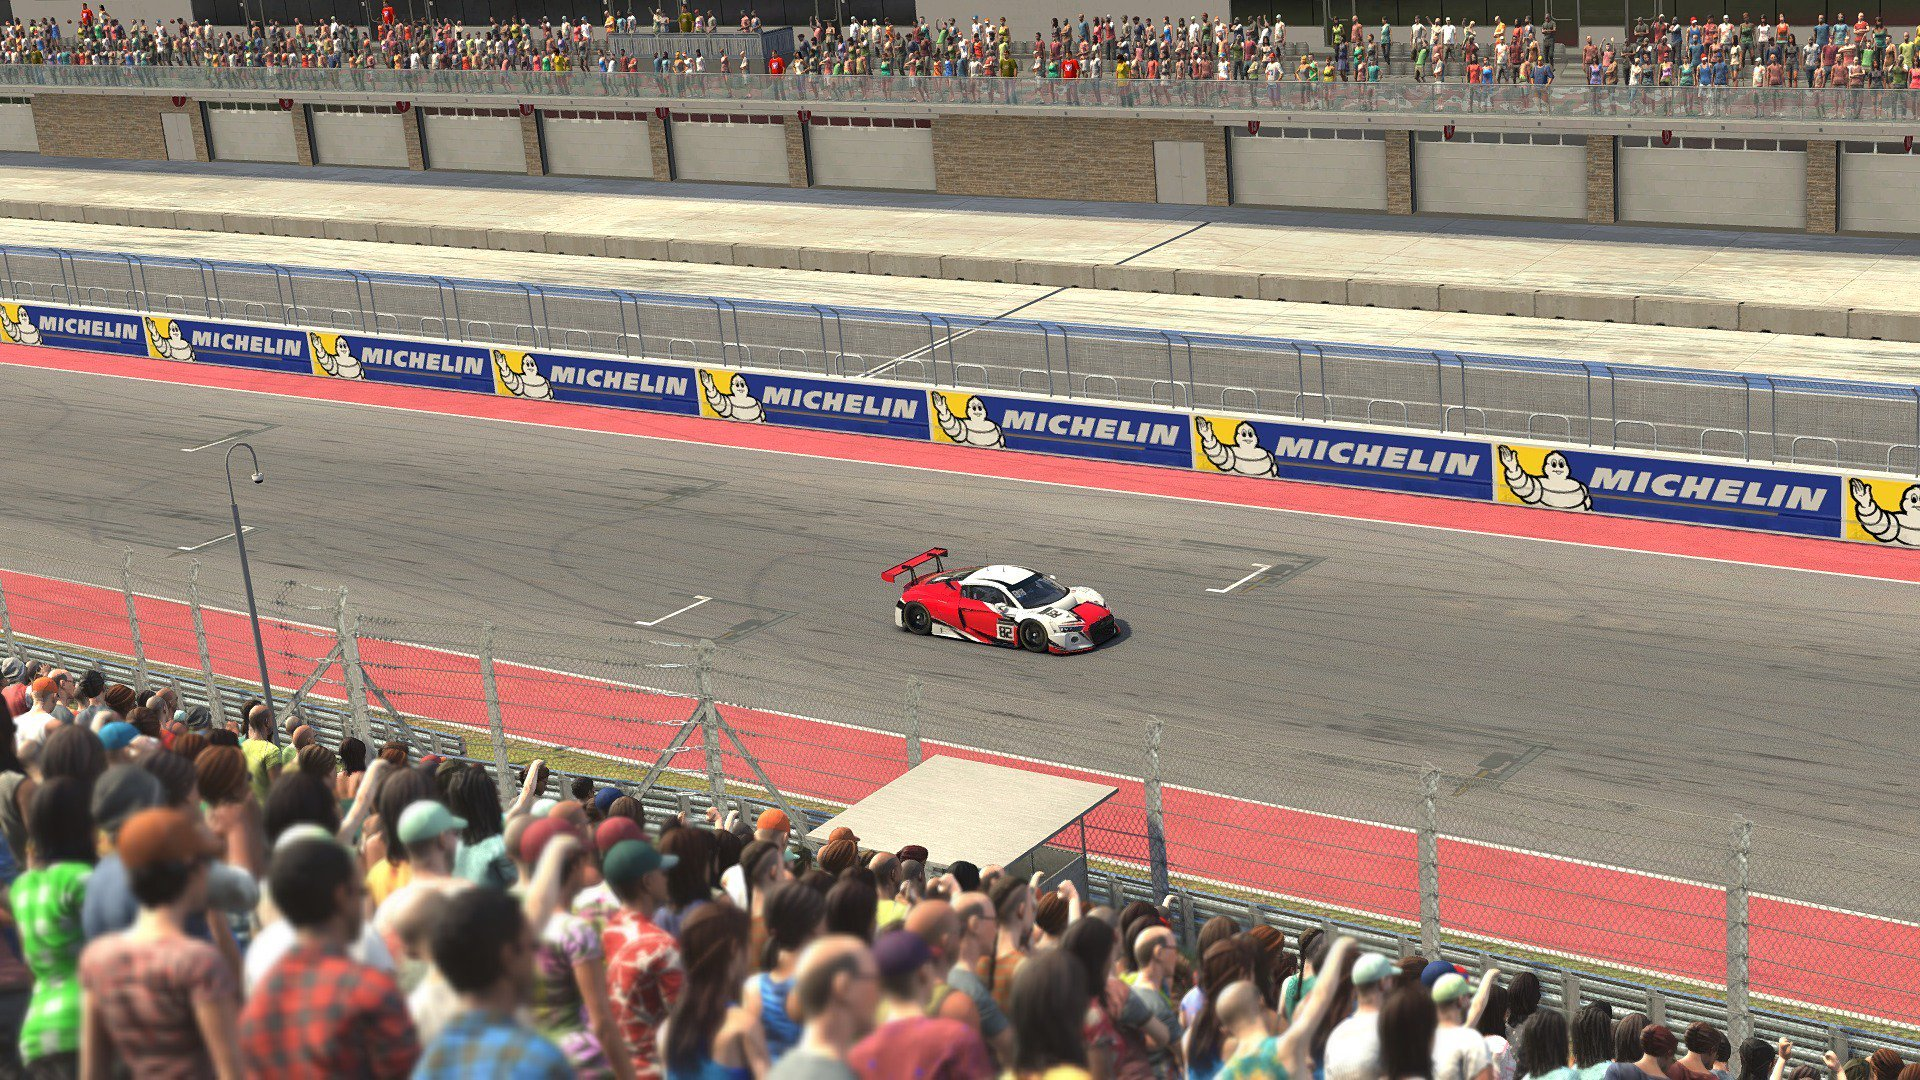 iRacing 2019 Season 1 Crowd